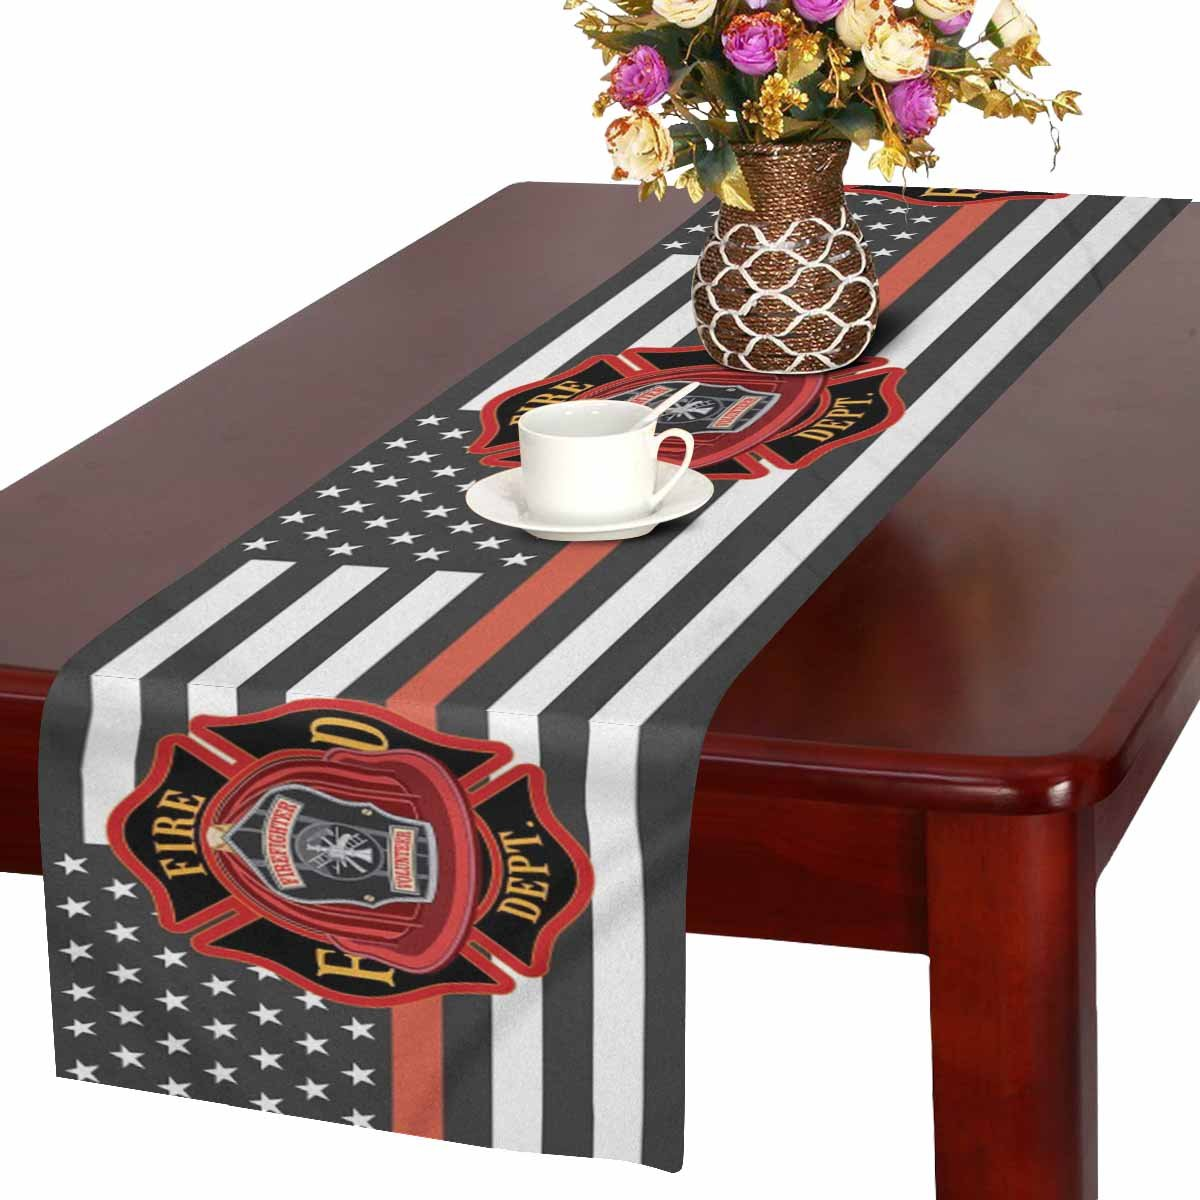 Mkhert Thin Red Line Firefighter Flag Table Runner Home Decor For Home Kitchen Wedding Party Banquet Decoration 16x72 Inch Walmart Com Walmart Com